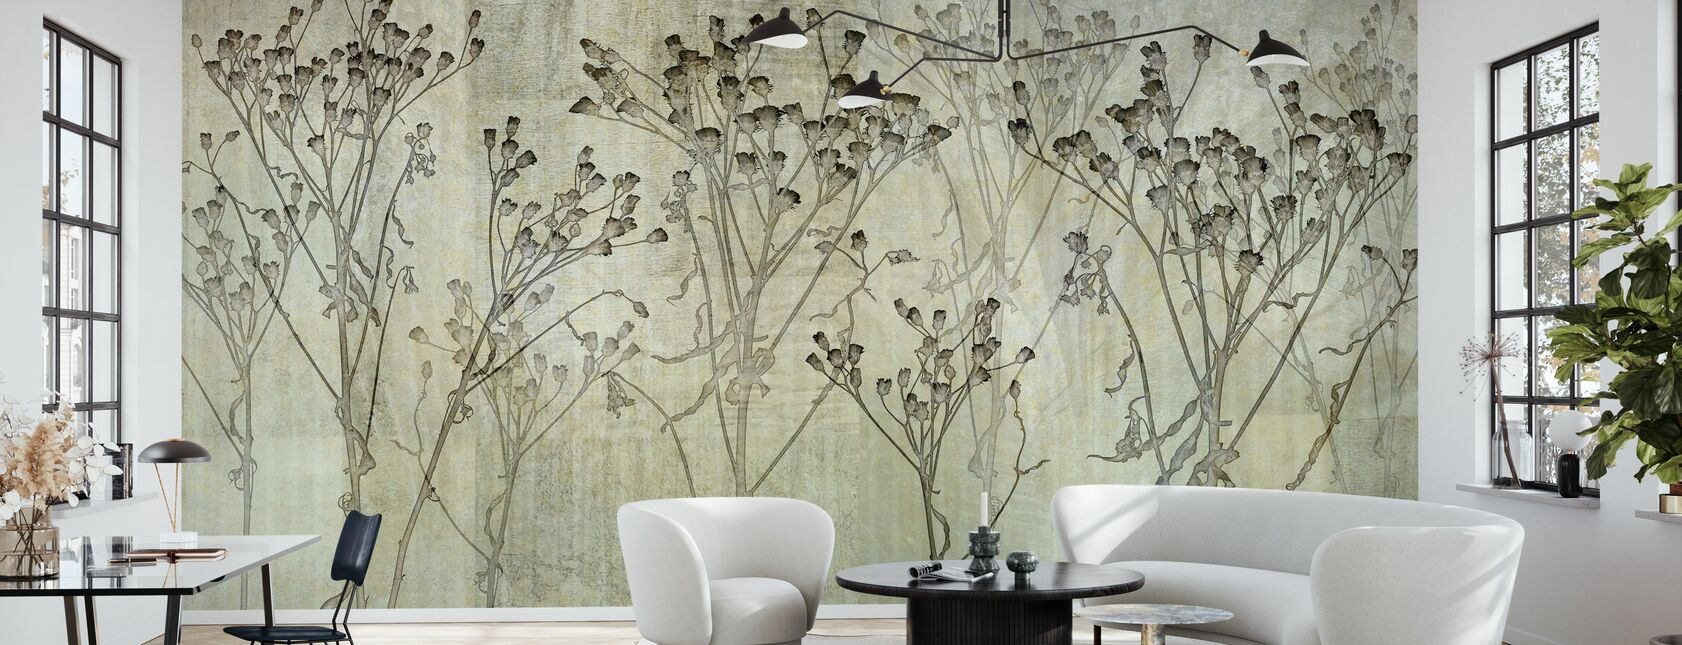 Concrete Weed - Wallpaper - Living Room